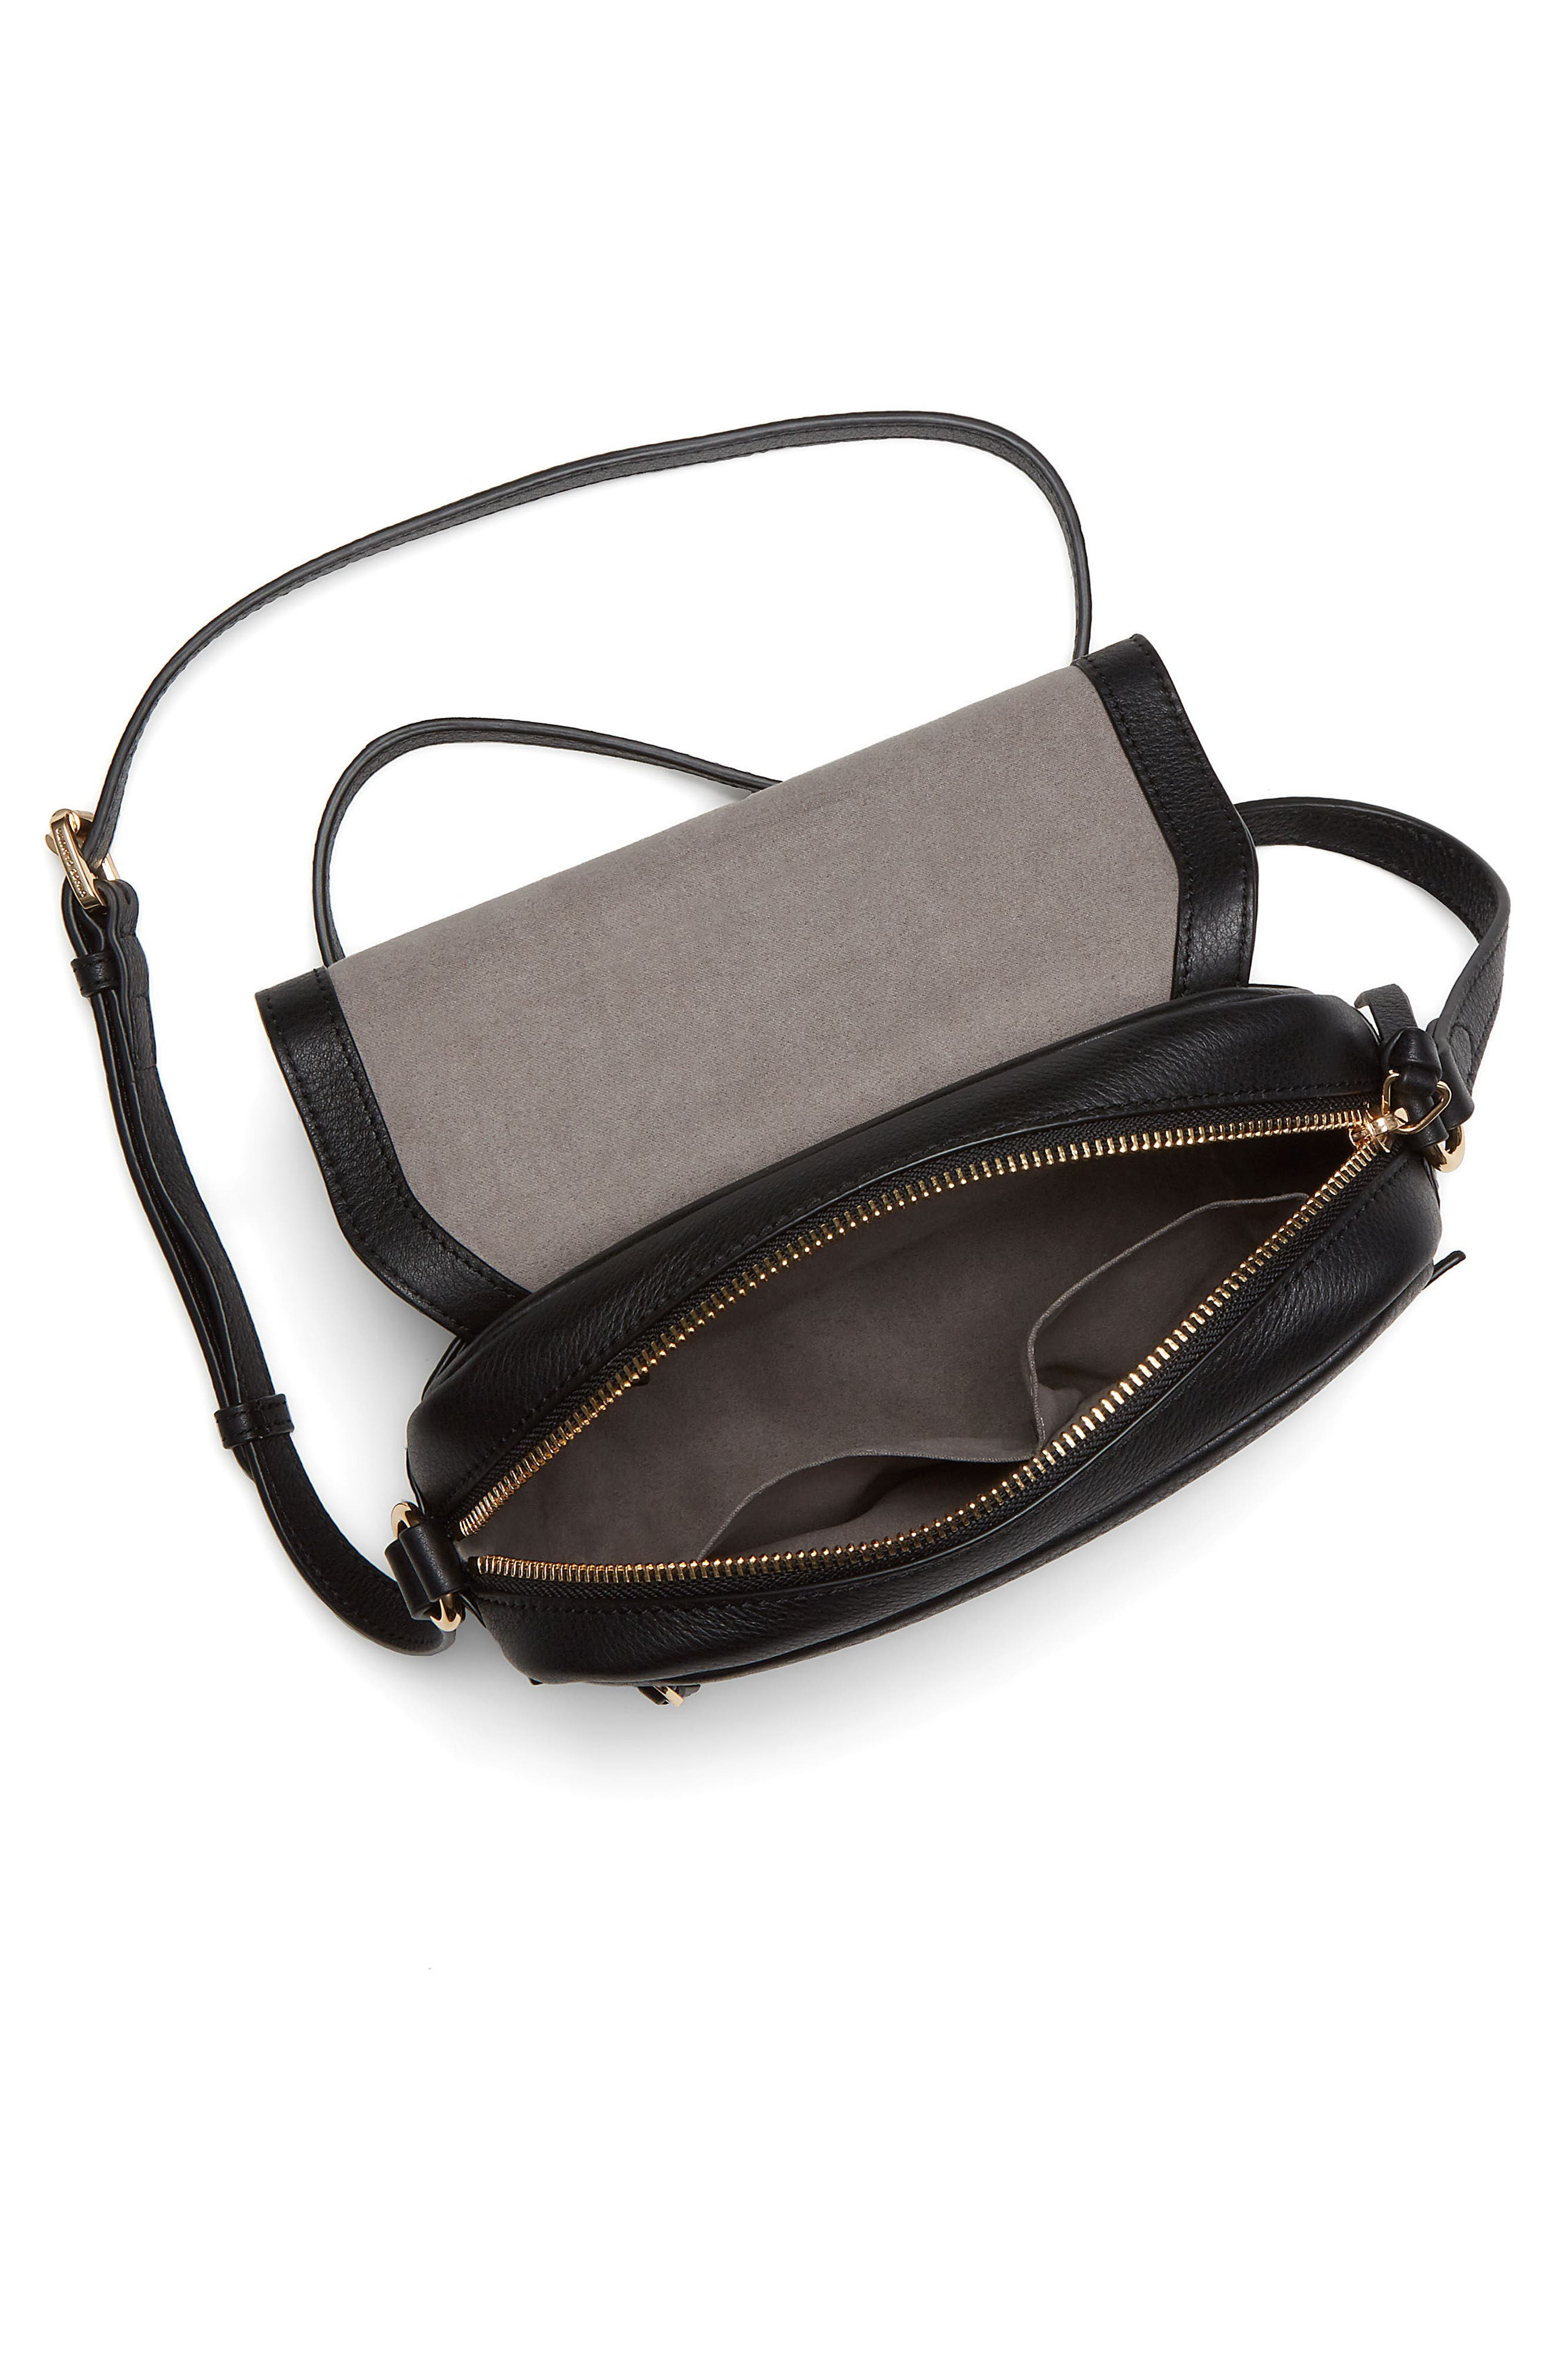 Stina Leather Crossbody Bag,                             Alternate thumbnail 3, color,                             001